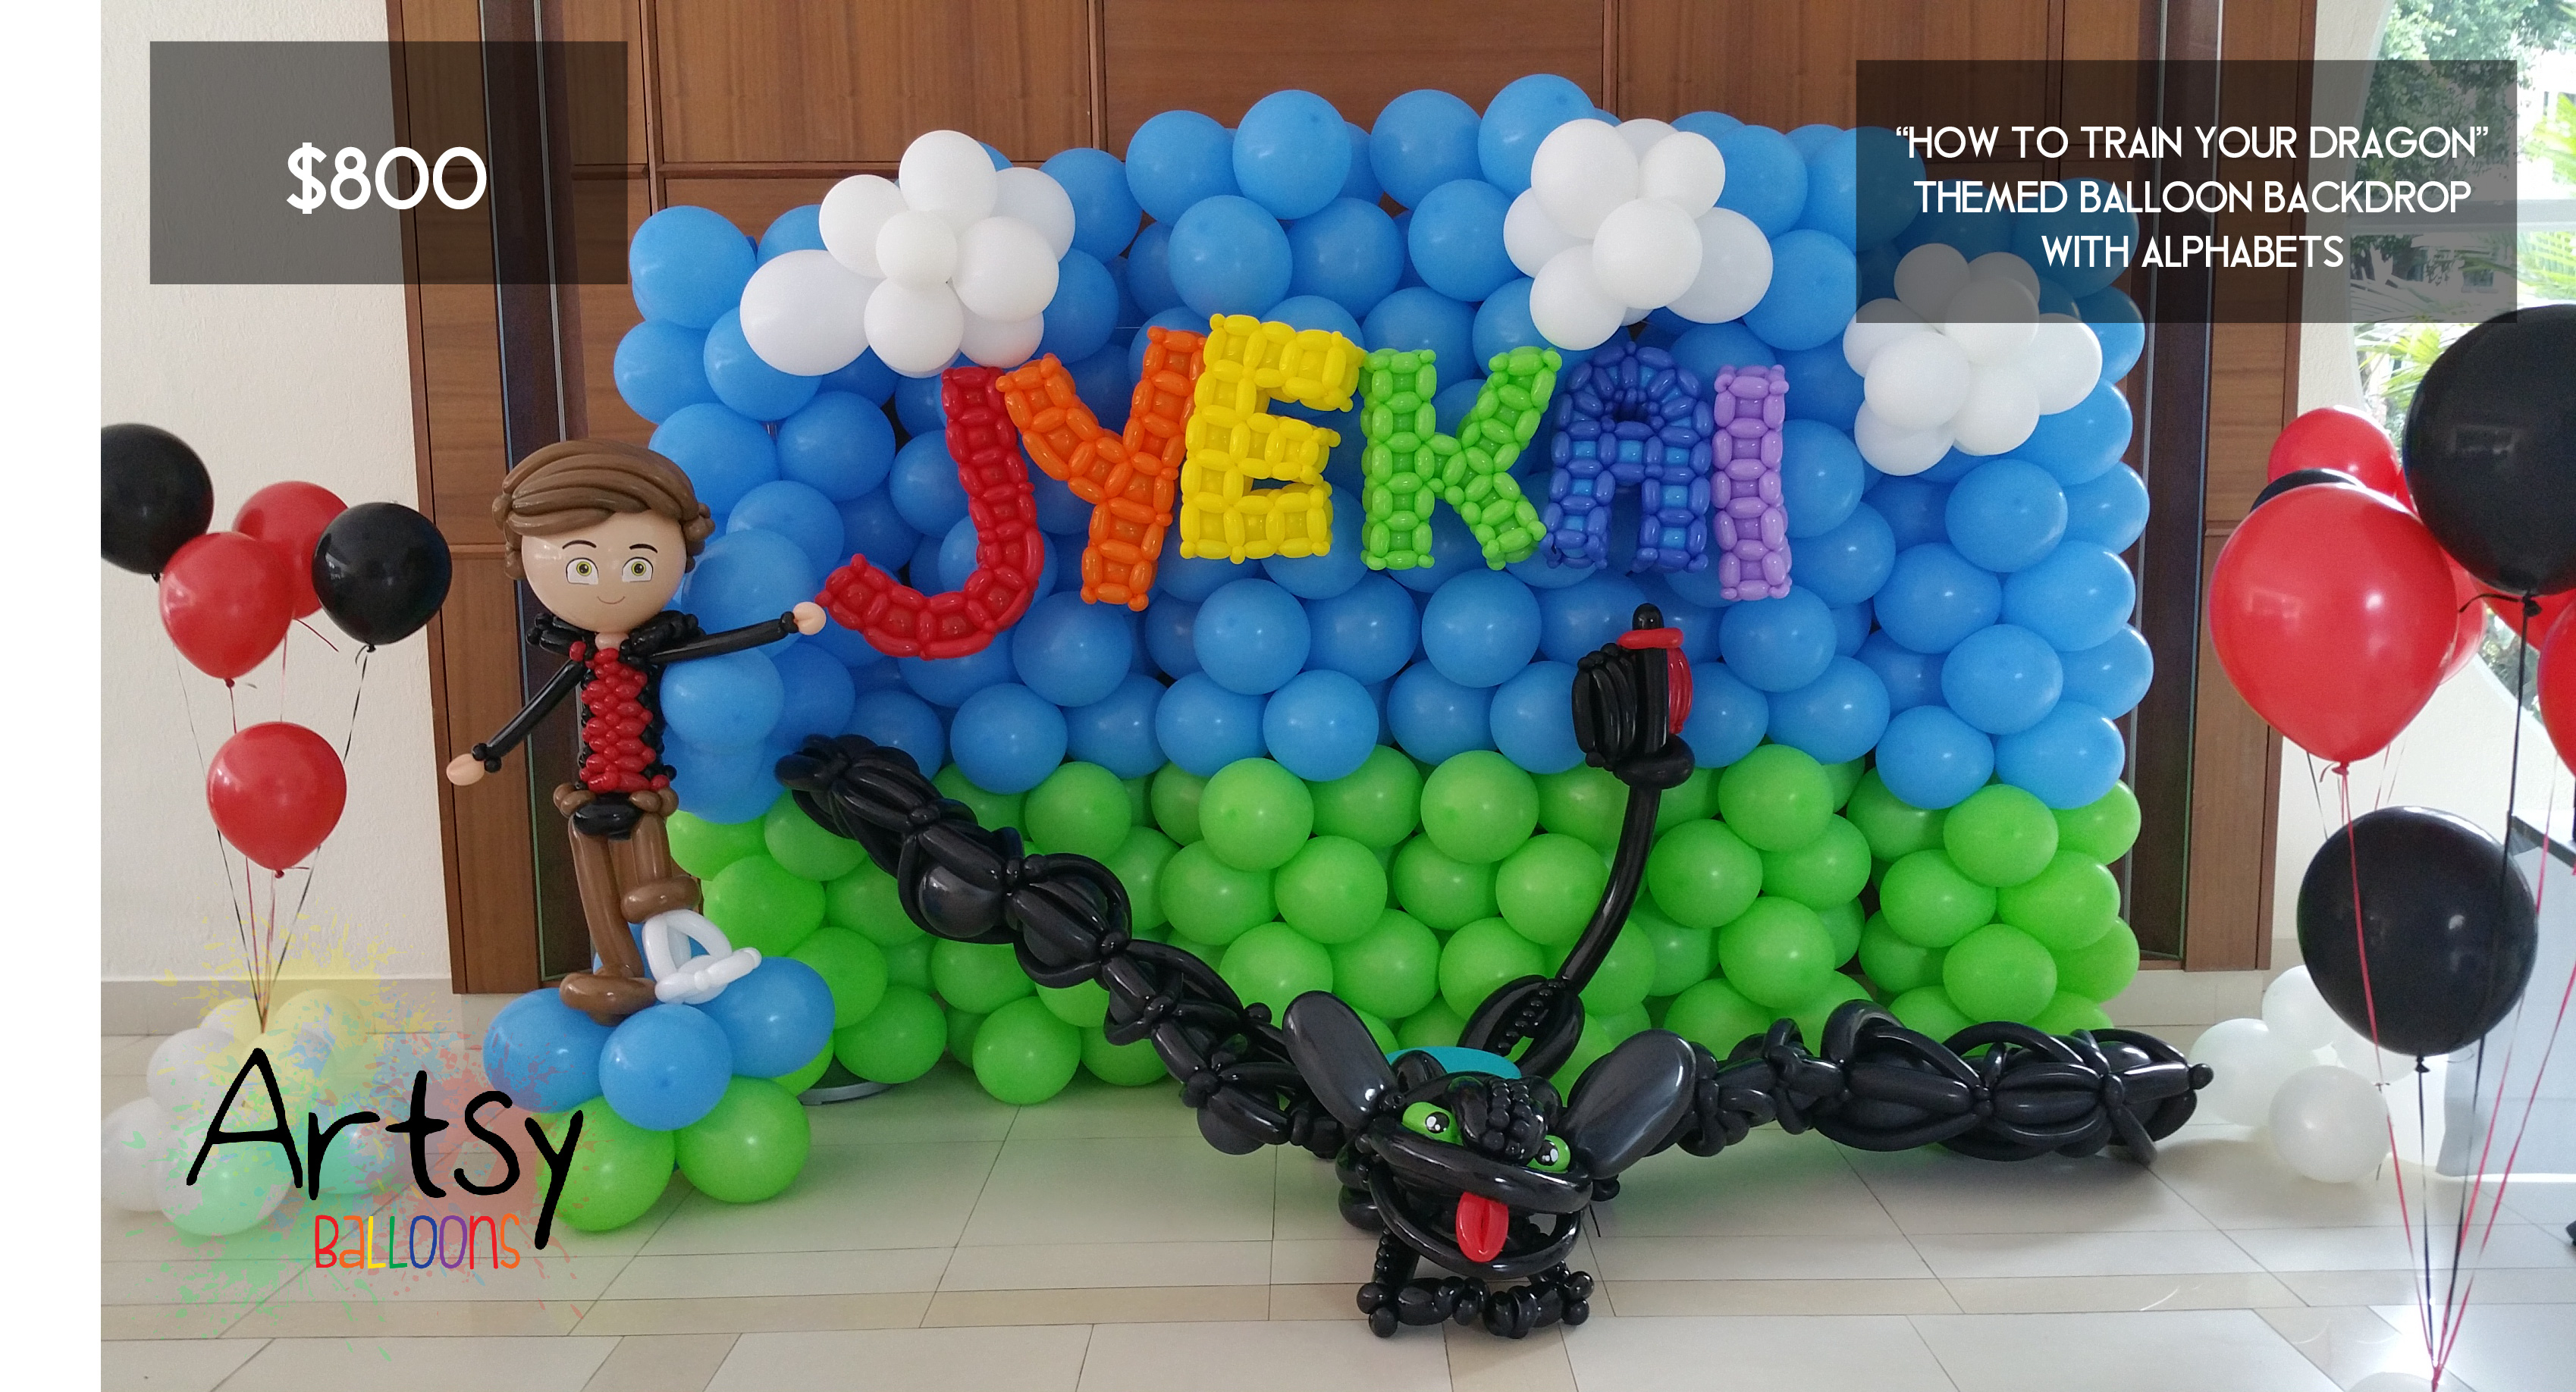 How to train your dragon themed balloon backdrop Singapore Balloon